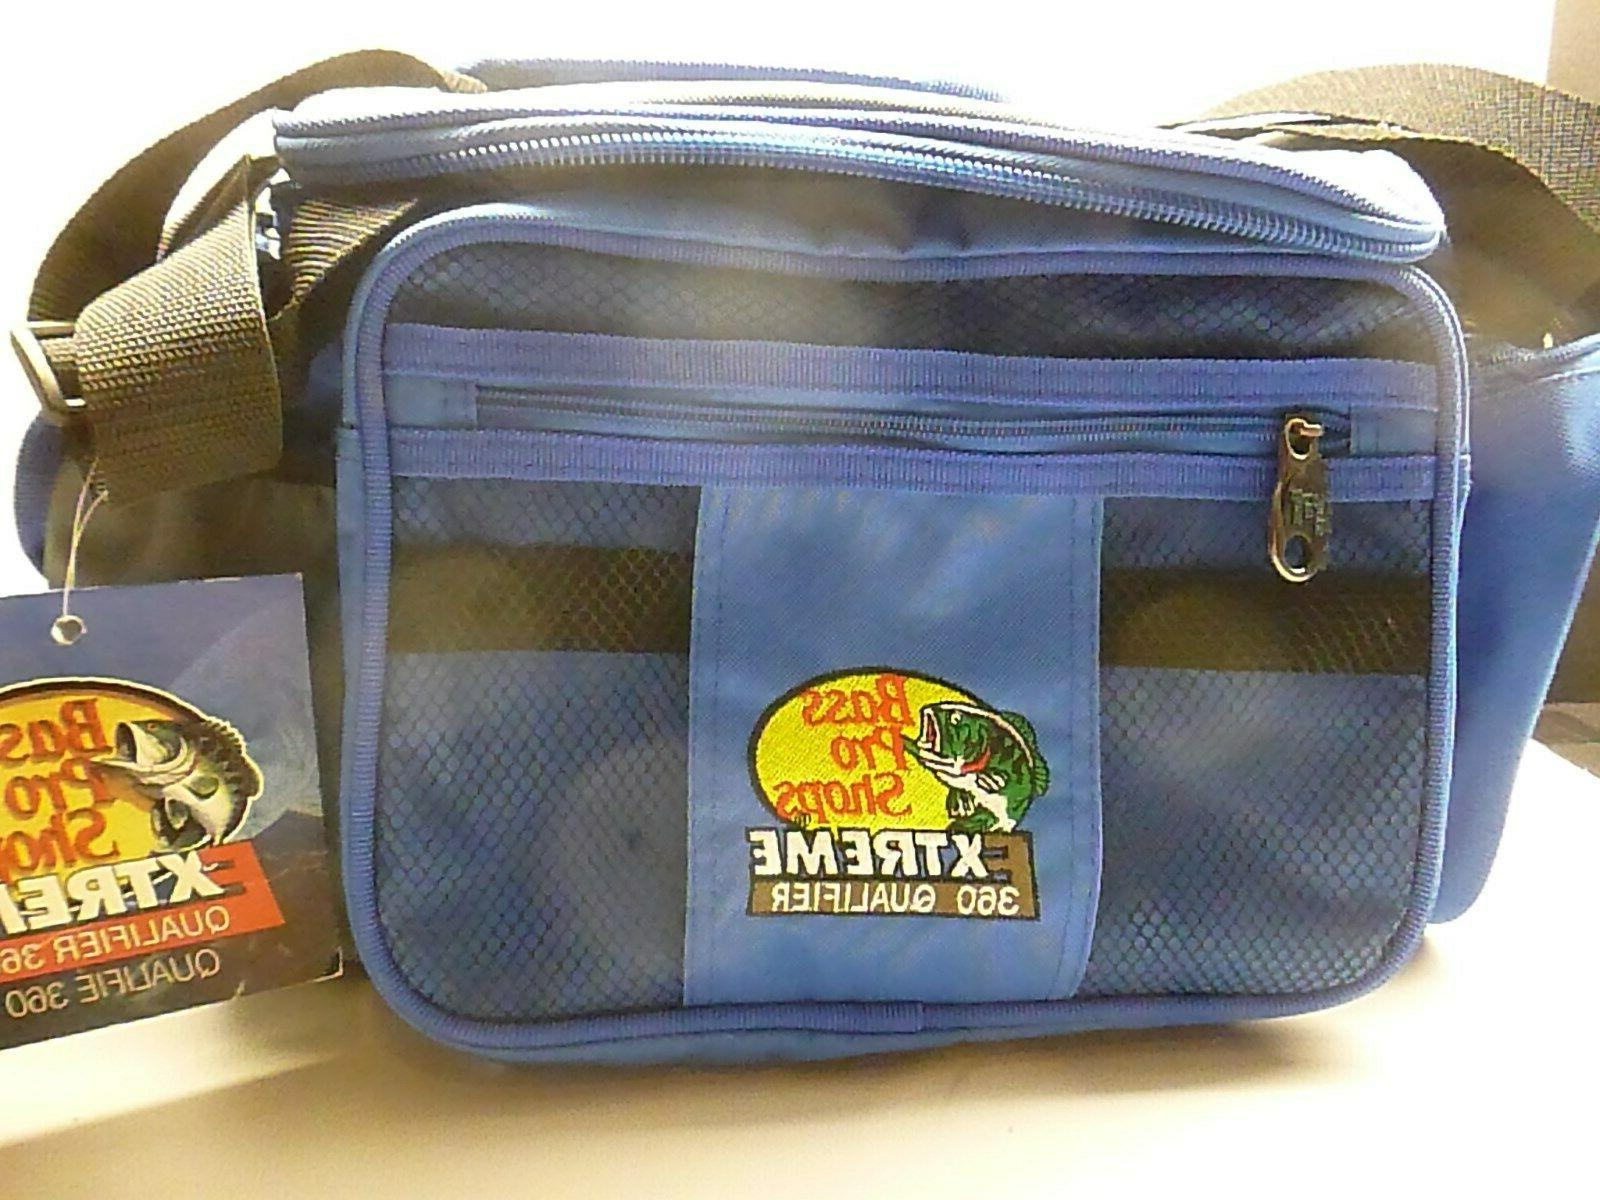 bass pro extreme 360 qualifier tackle bag